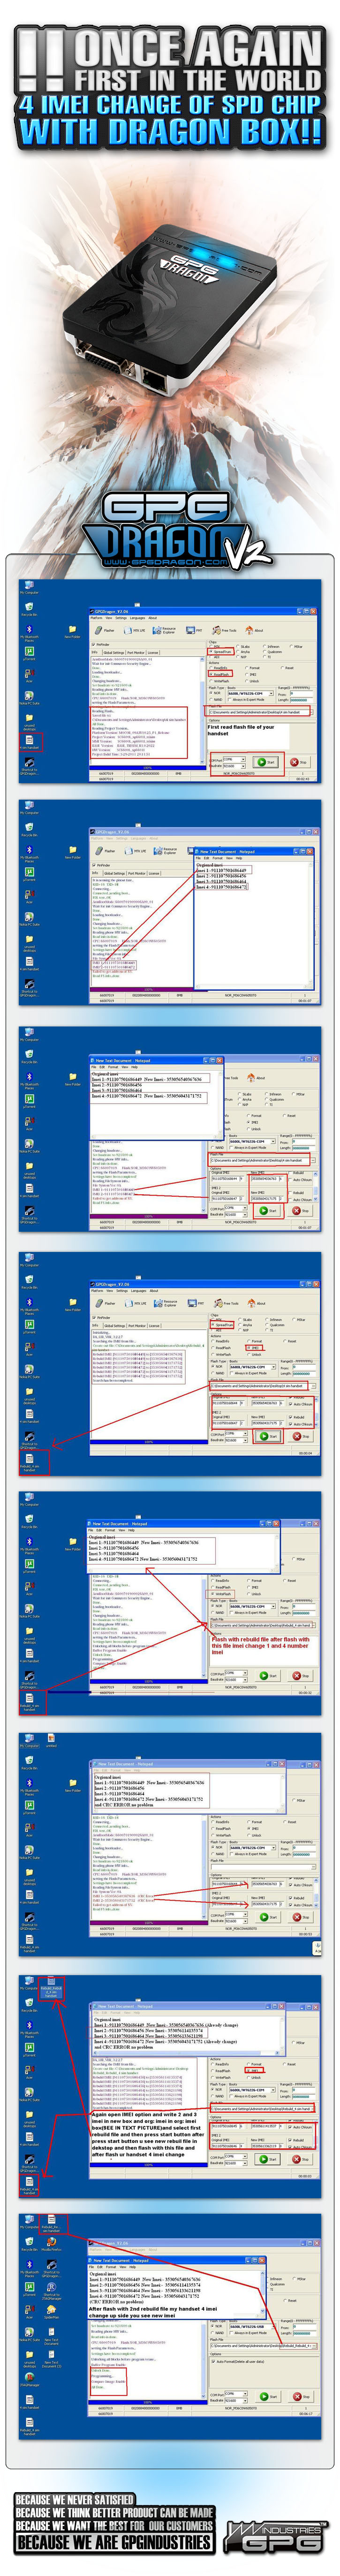 2011 06 08 4 imei change of SPD chip with Dragon Box 725